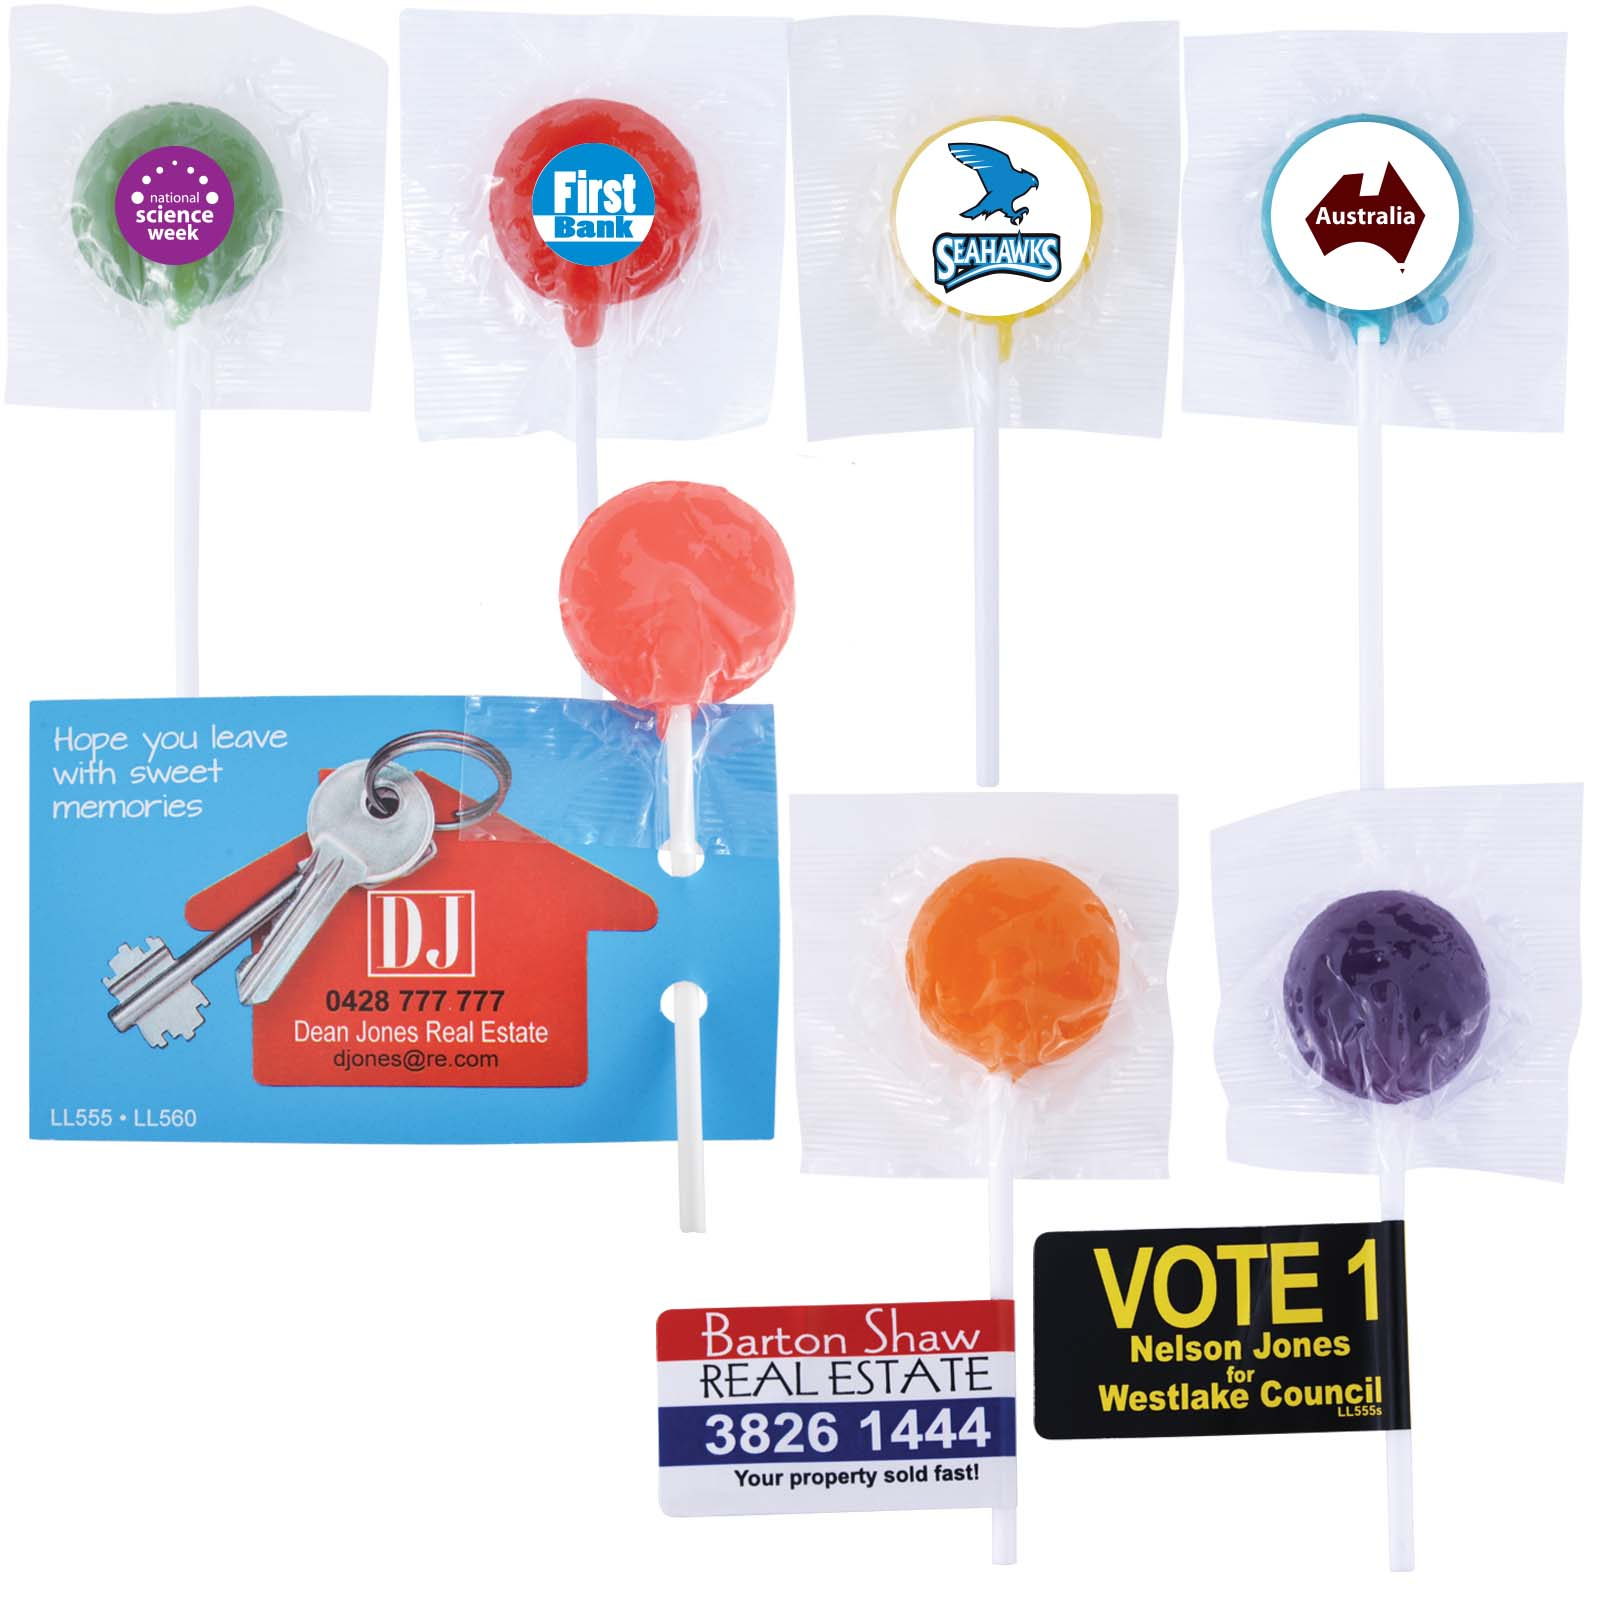 Assorted Colour Lollipops - Includes a full colour logo